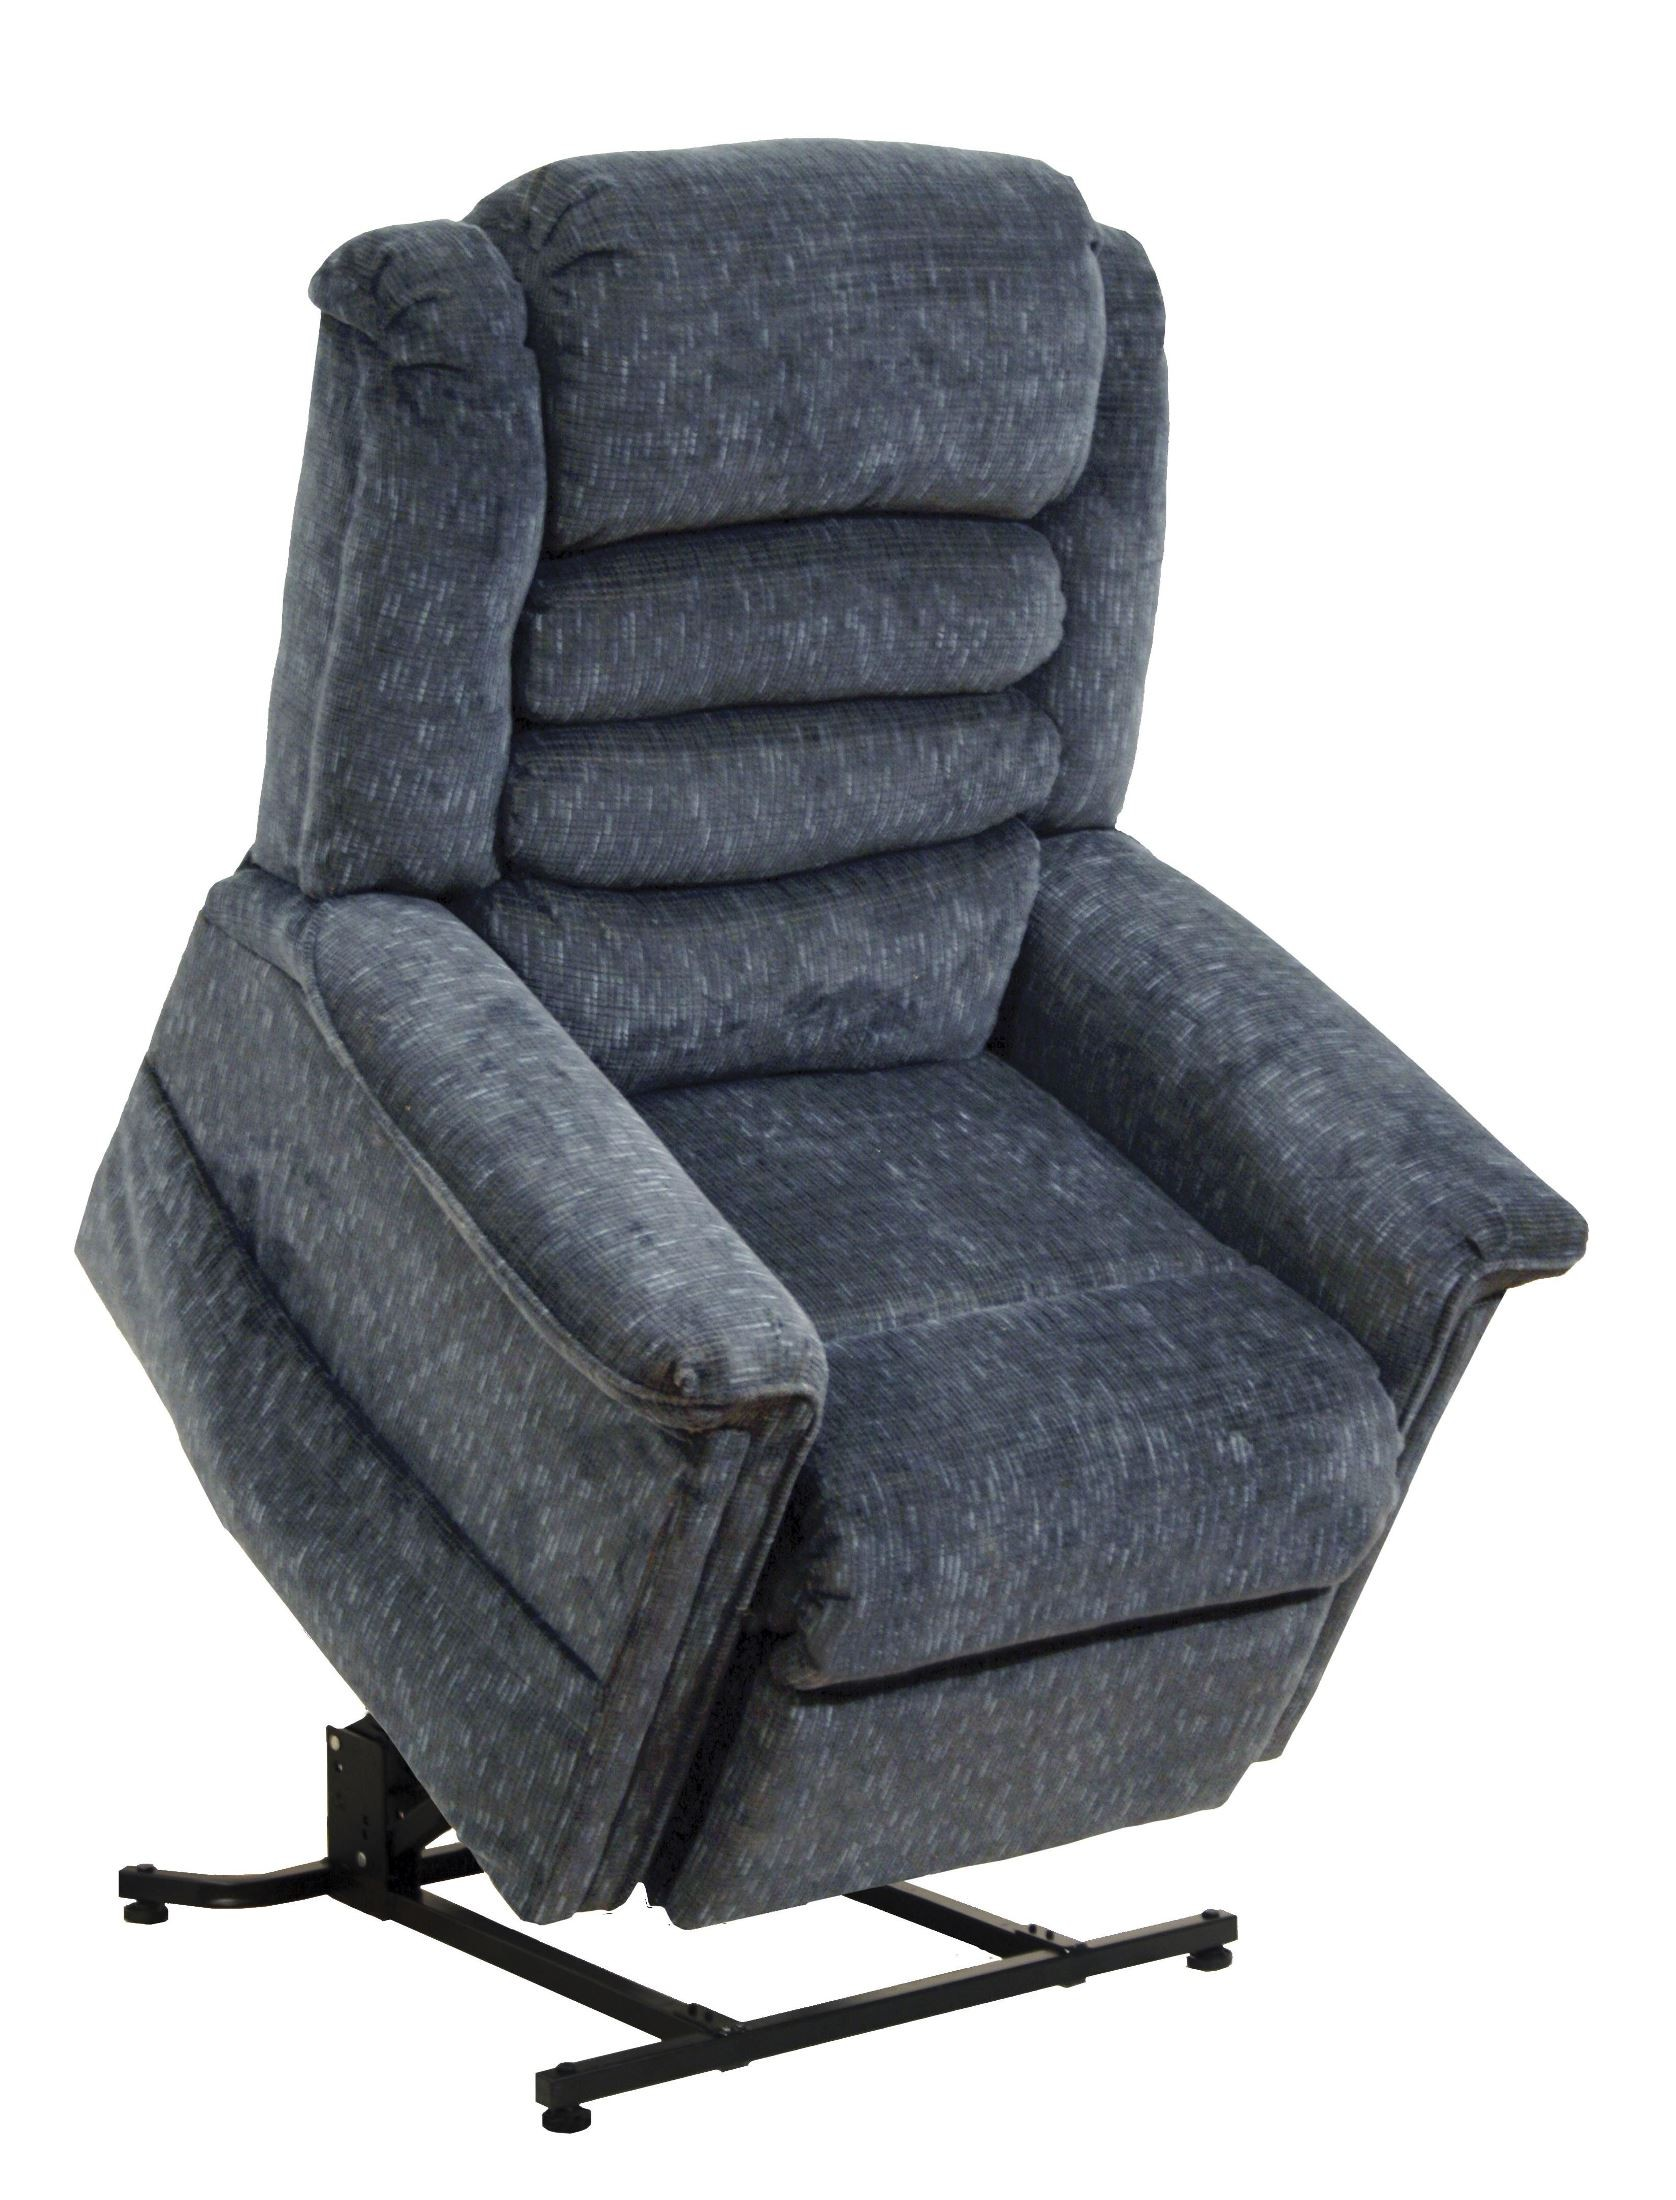 Soother galaxy power lift recliner from catnapper for Catnapper cloud nine chaise recliner